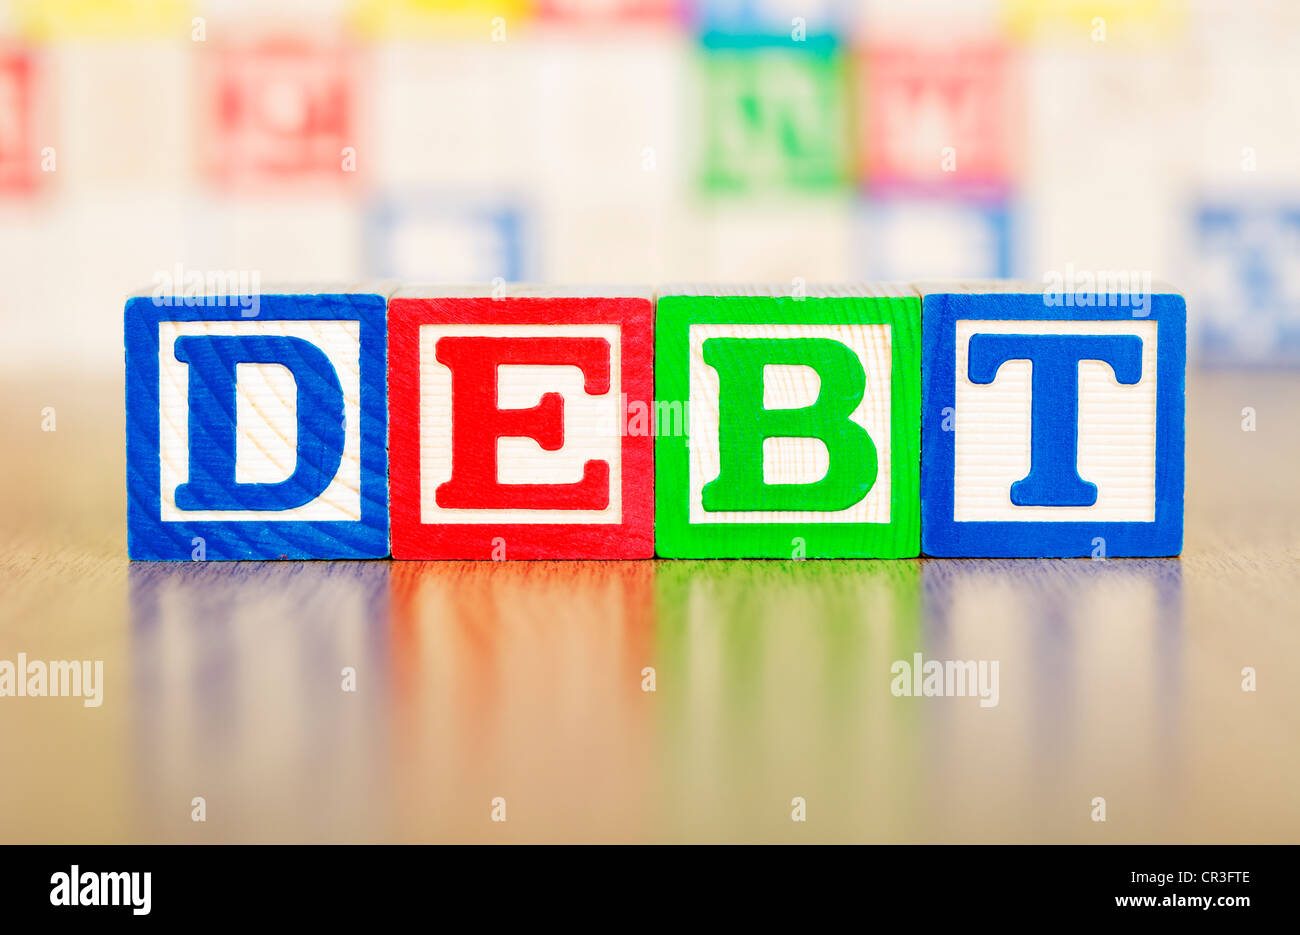 Debt Spelled Out in Alphabet Building Blocks - Stock Image